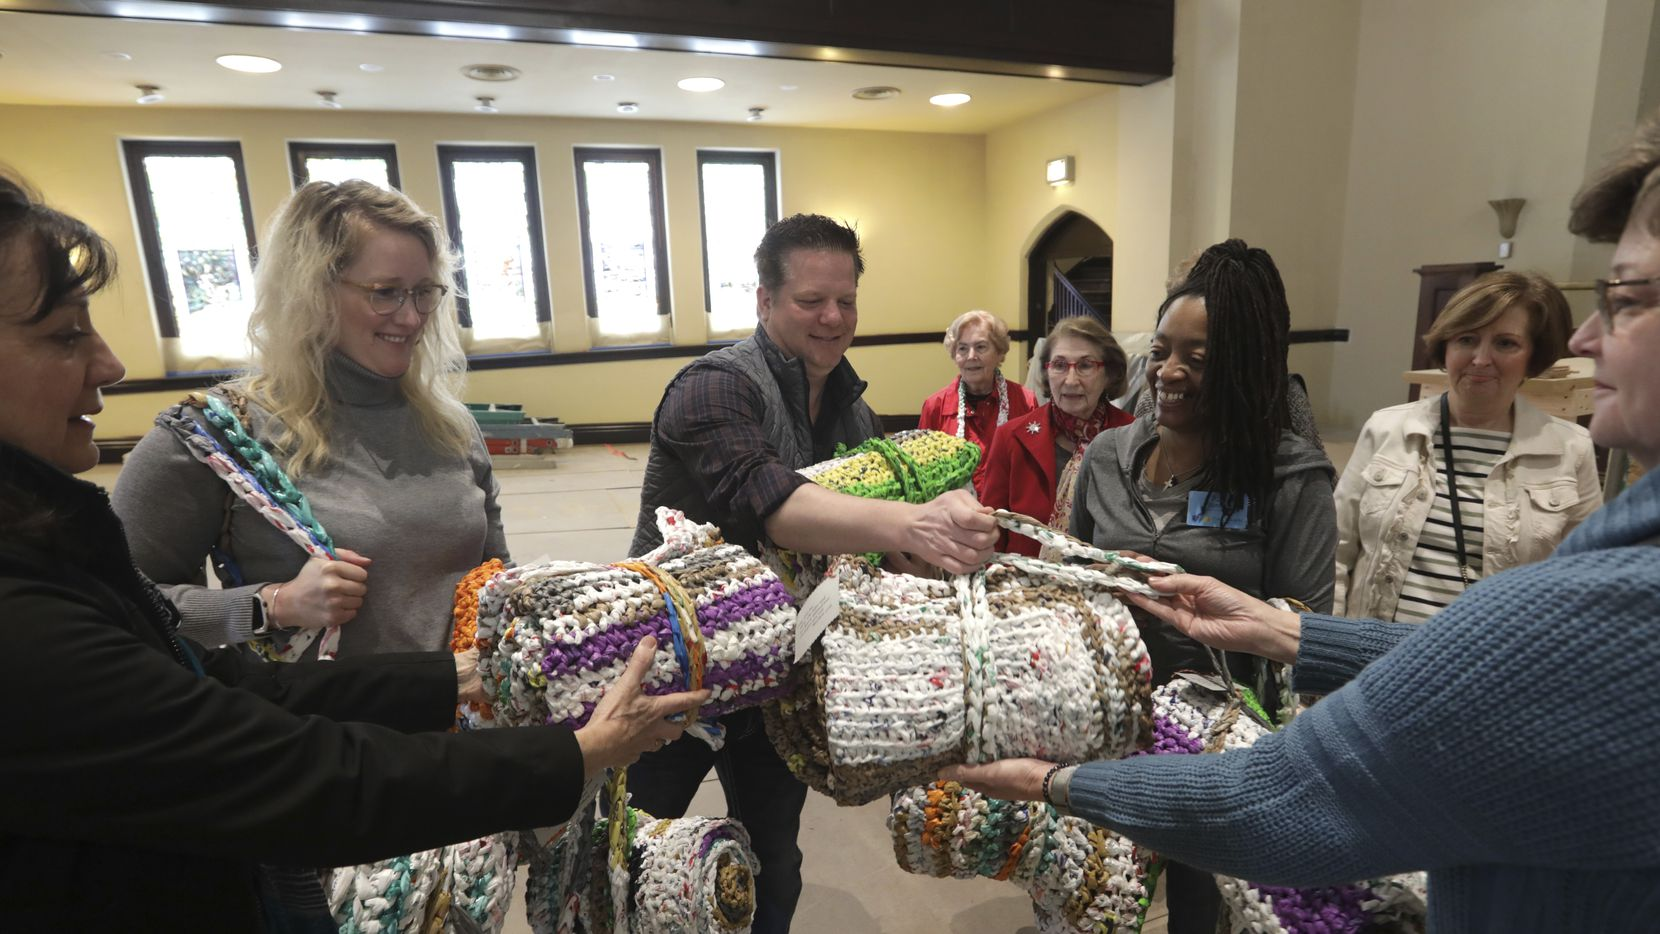 Members of CC Young Senior Living deliver crocheted mats made from plastic bags to members of the Oak Lawn United Methodist Church in Dallas, on Jan. 27, 2020.